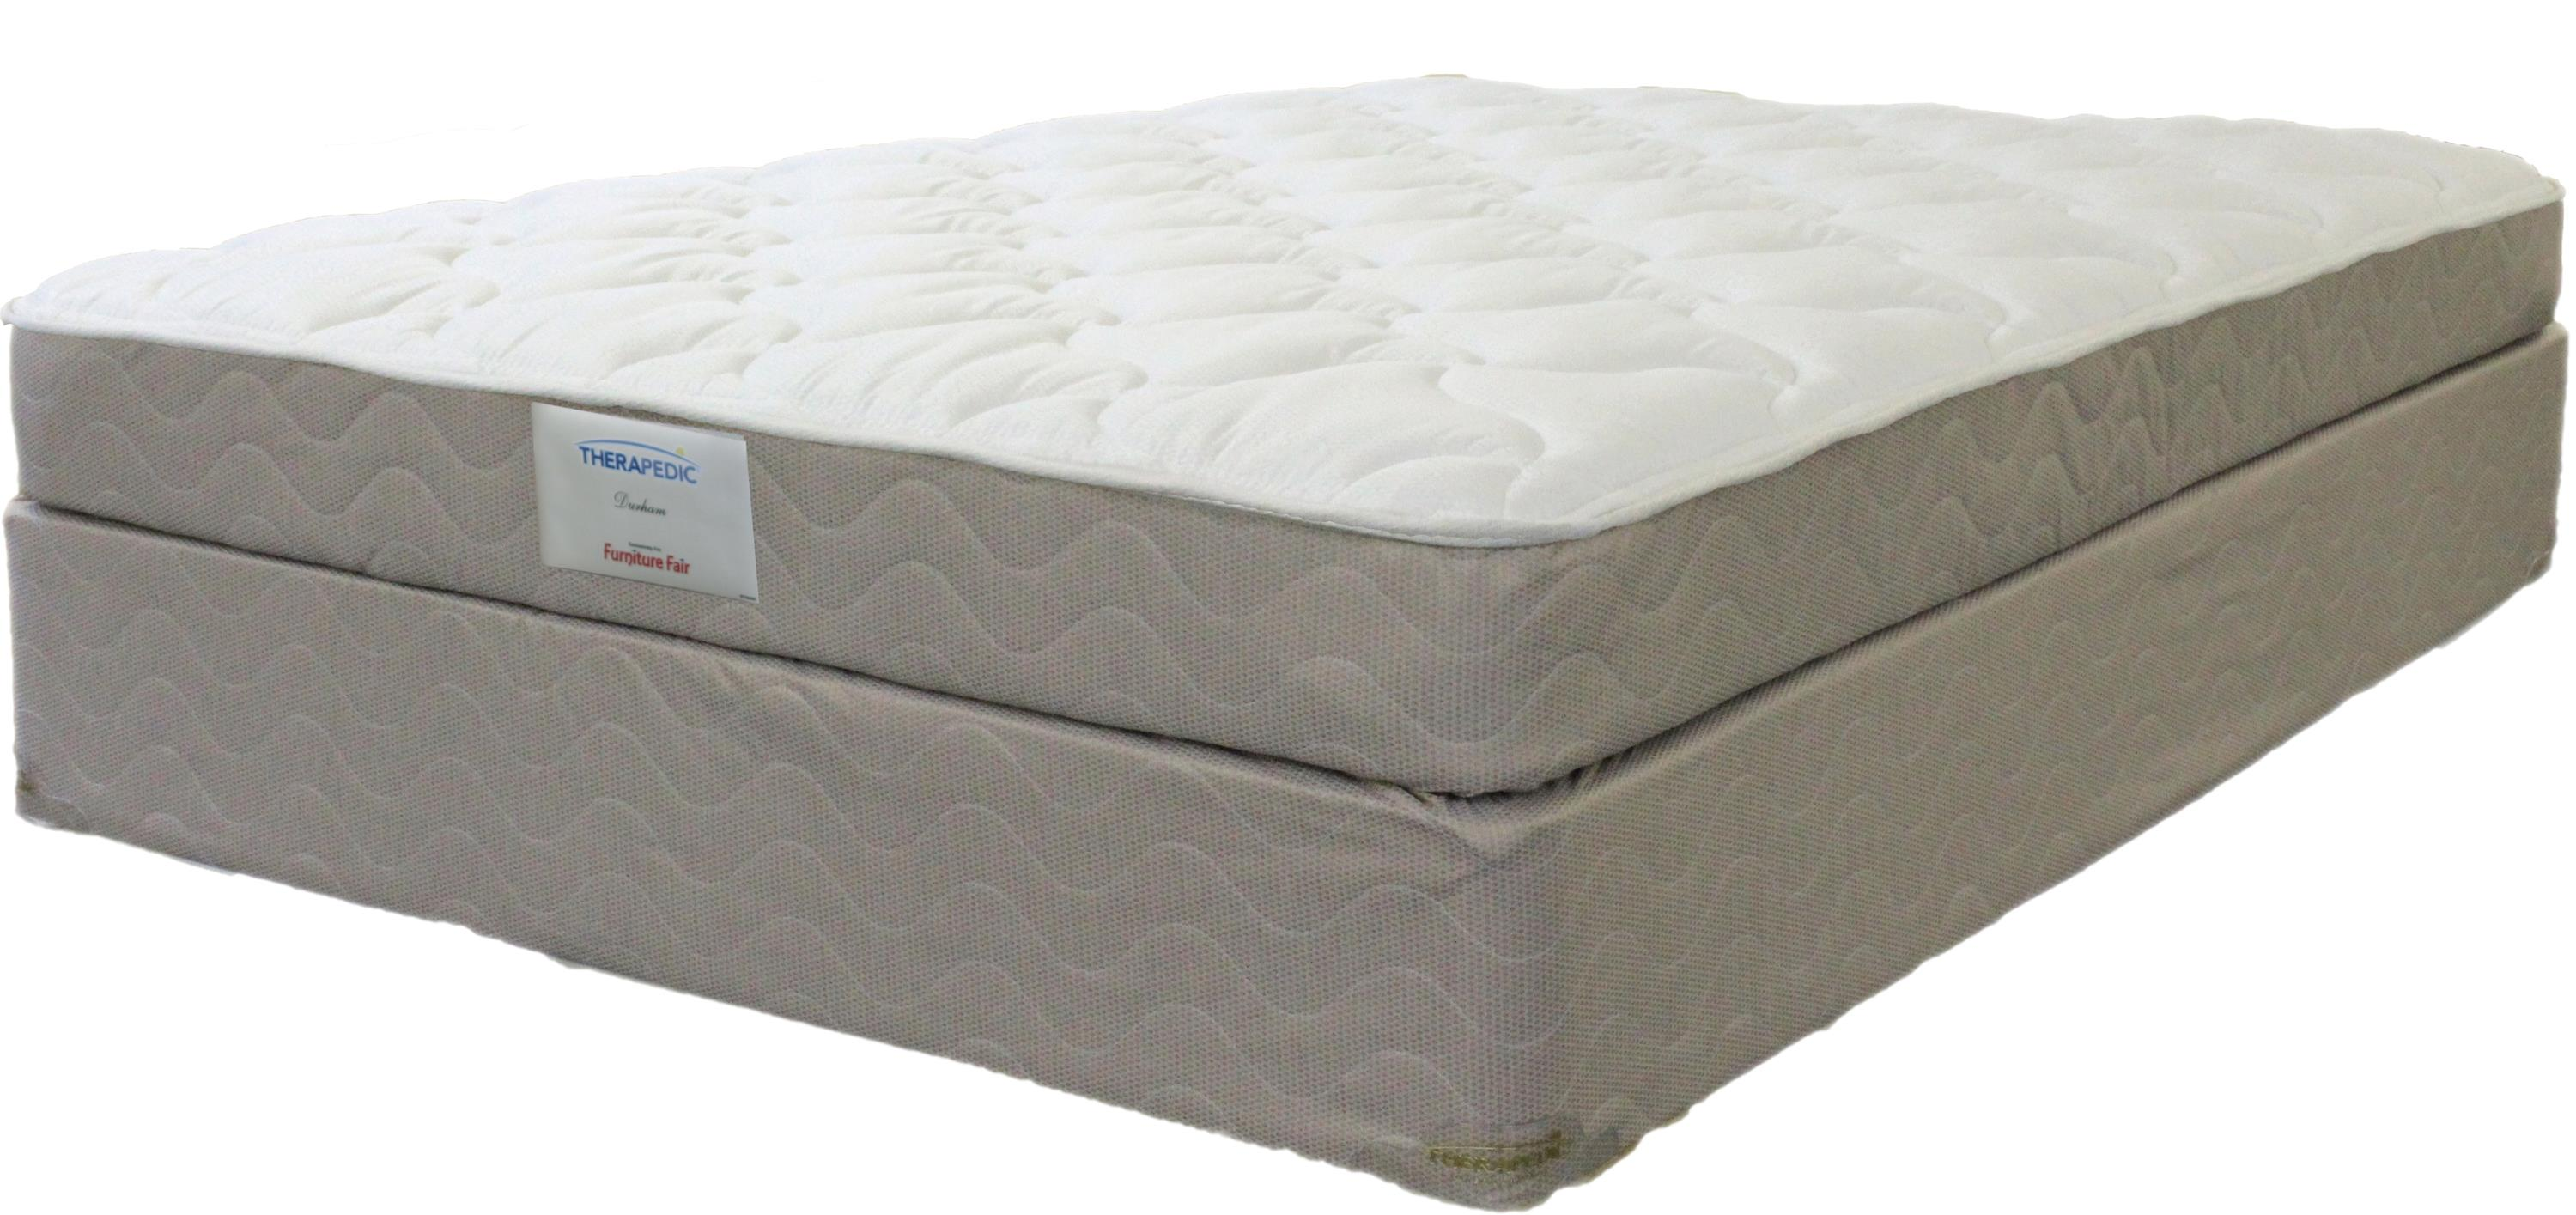 Kathy Ireland Finesse Full Luxury Firm Mattress Set by Therapedic at Nassau Furniture and Mattress